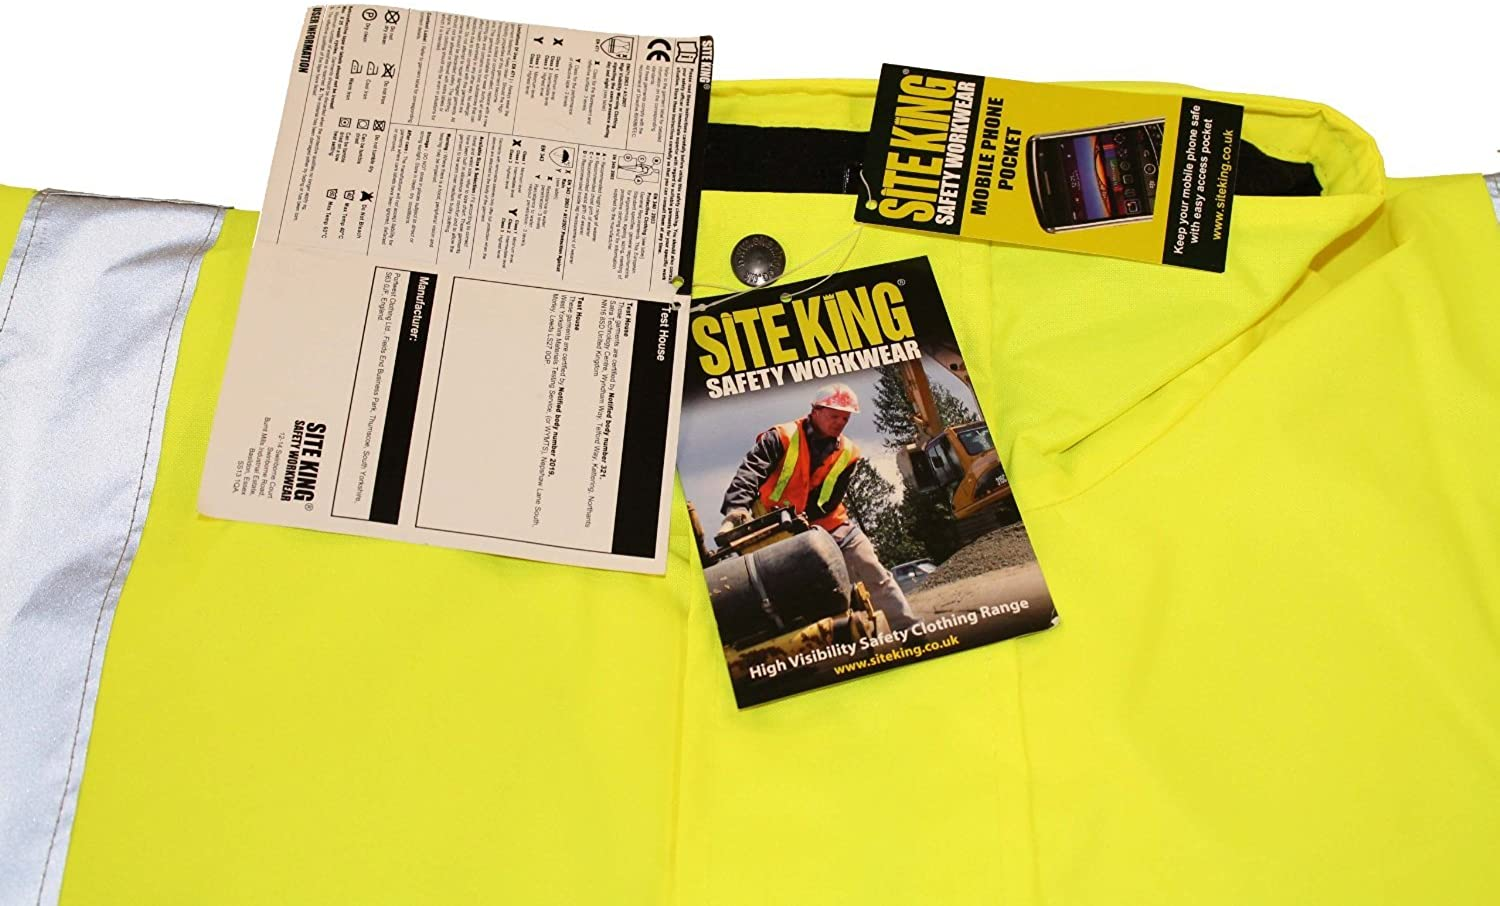 Mens Hi Visibility Padded Bomber Jackets By Site King Size S to 4XL COATS WORK ROAD SAFETY VIS viz